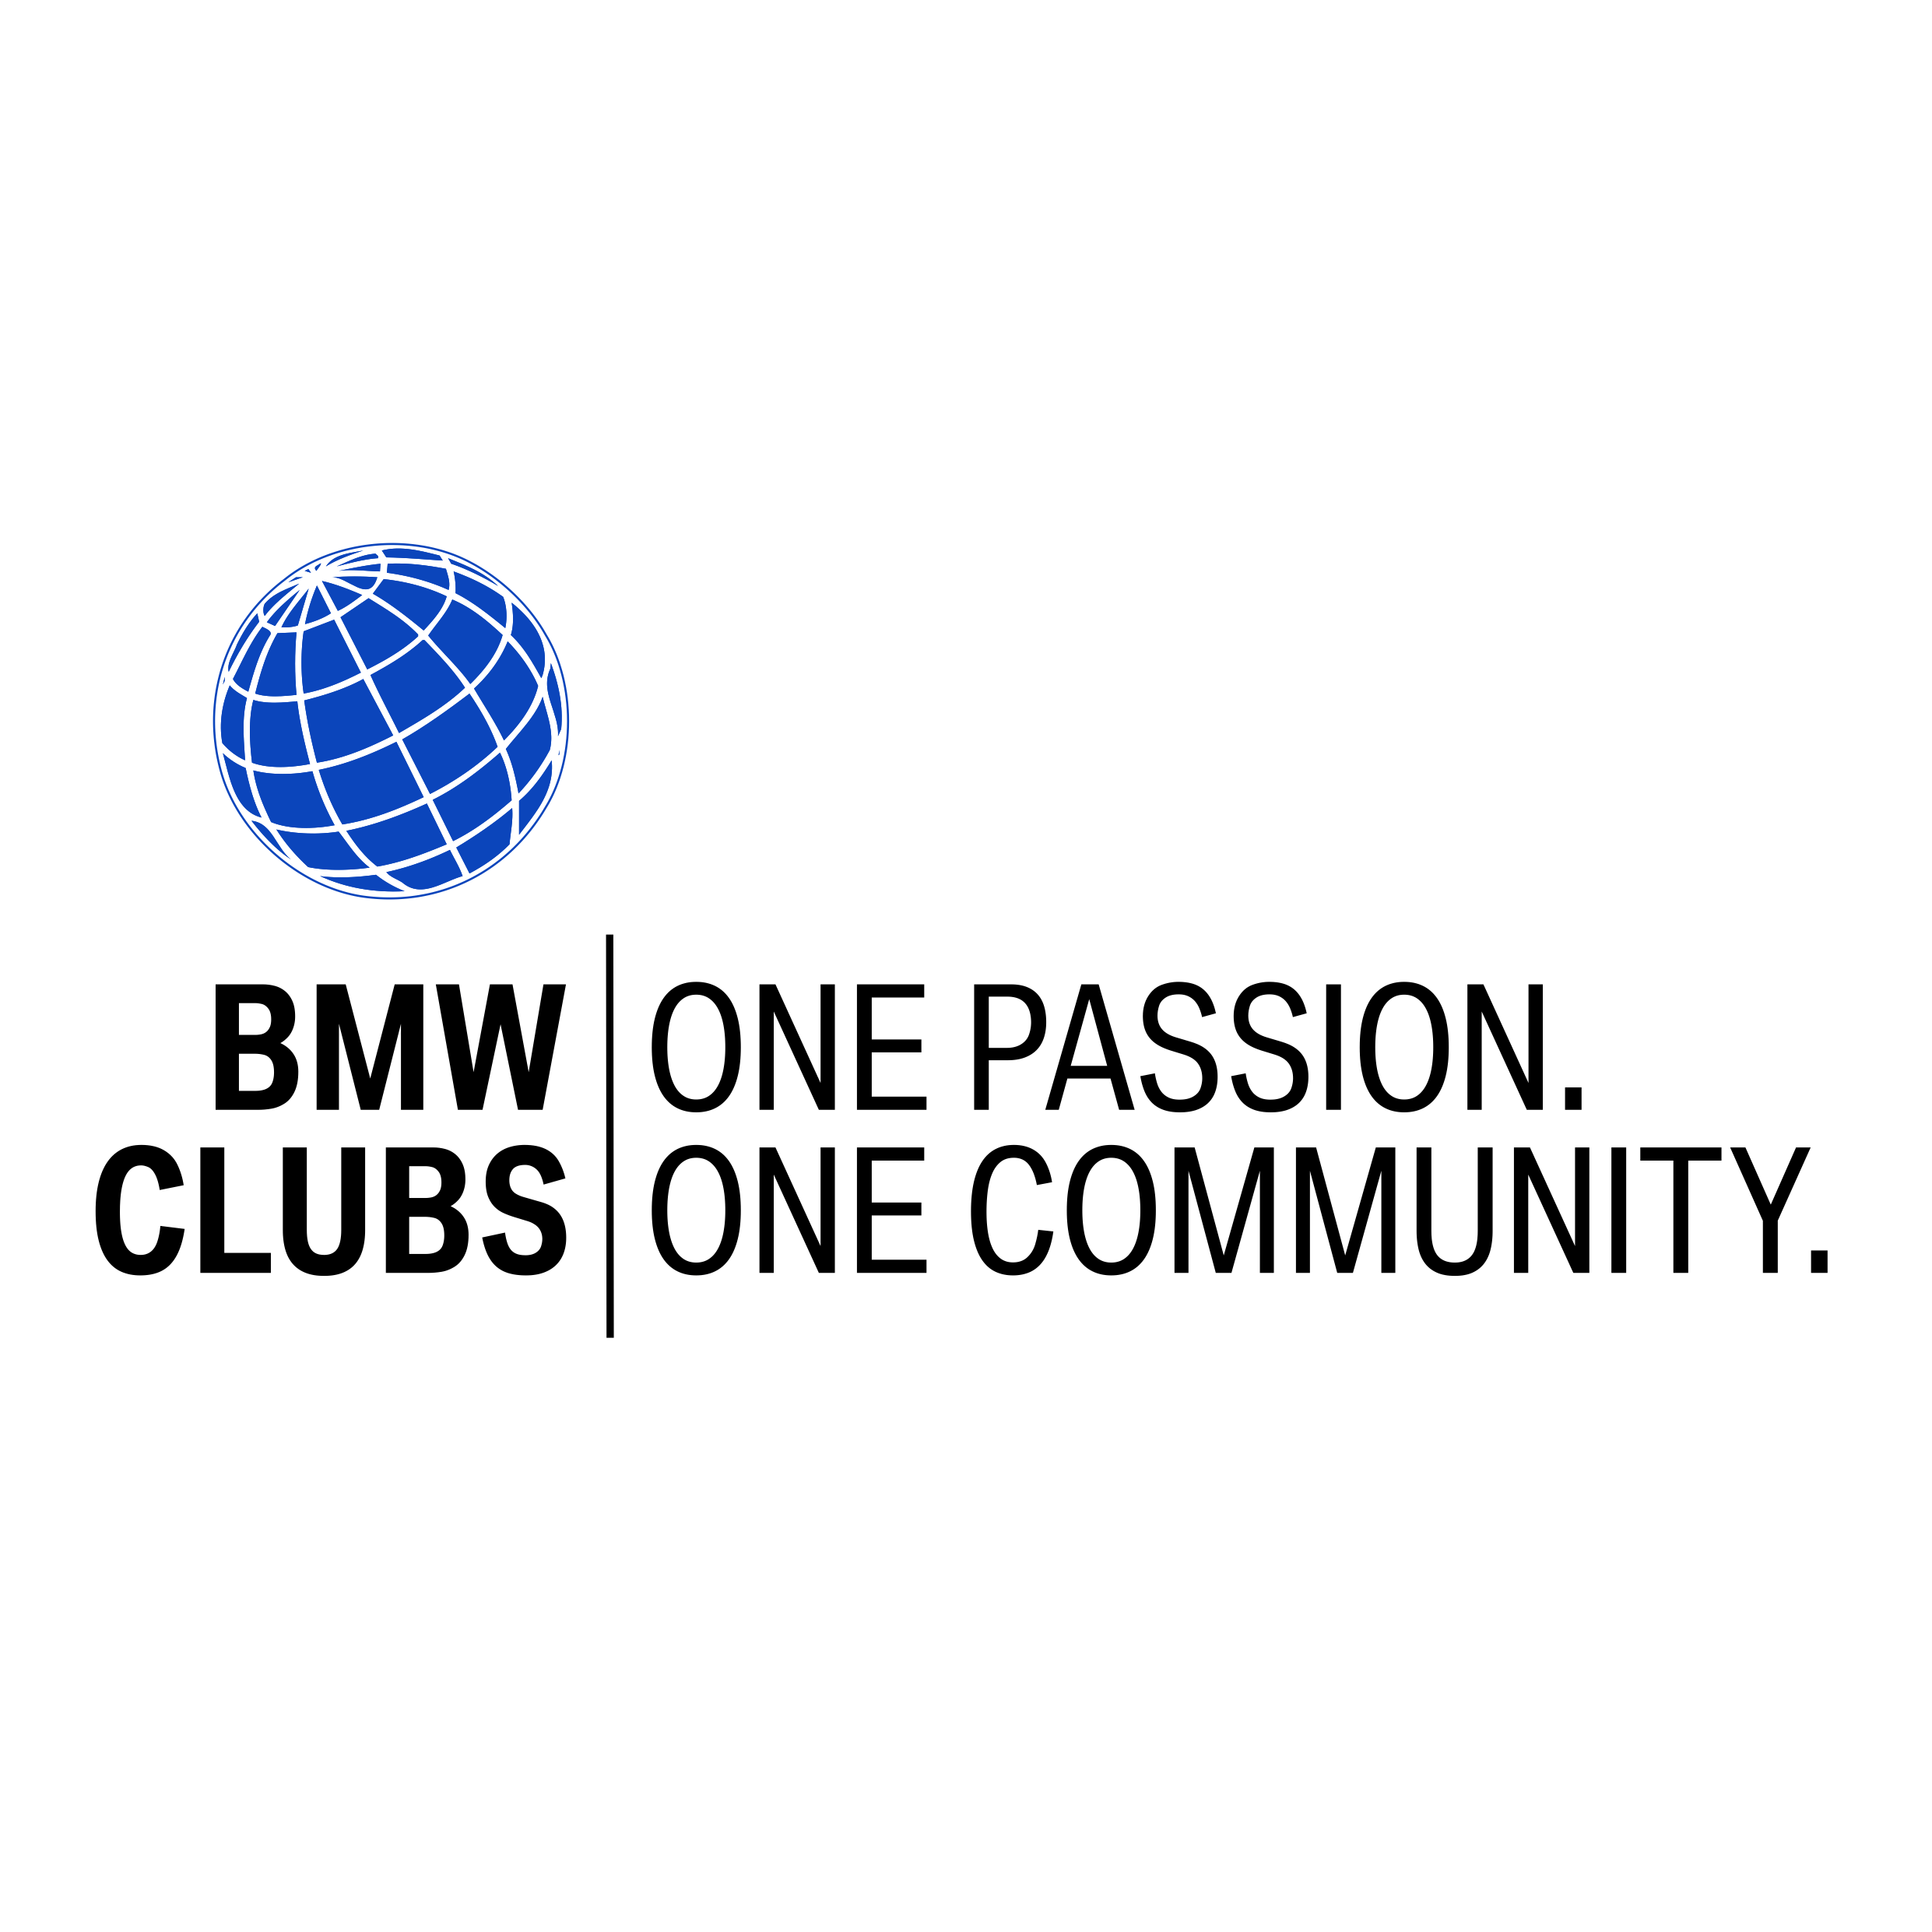 BMW CLUBS. ONE PASSION. ONE COMMUNITY.